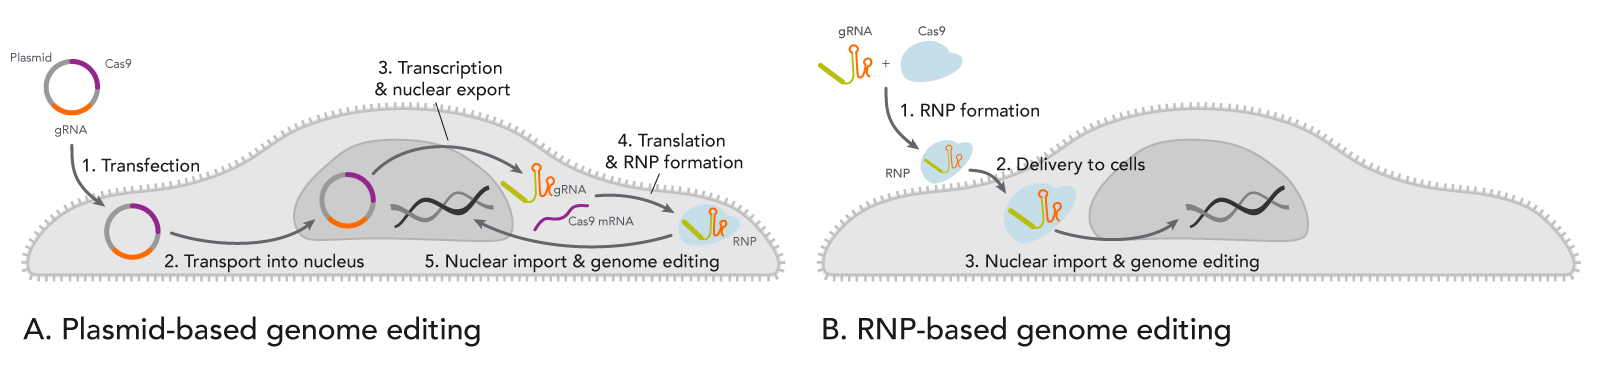 CRISPR plasmid transfection slows genome editing compared to direct RNP introduction.